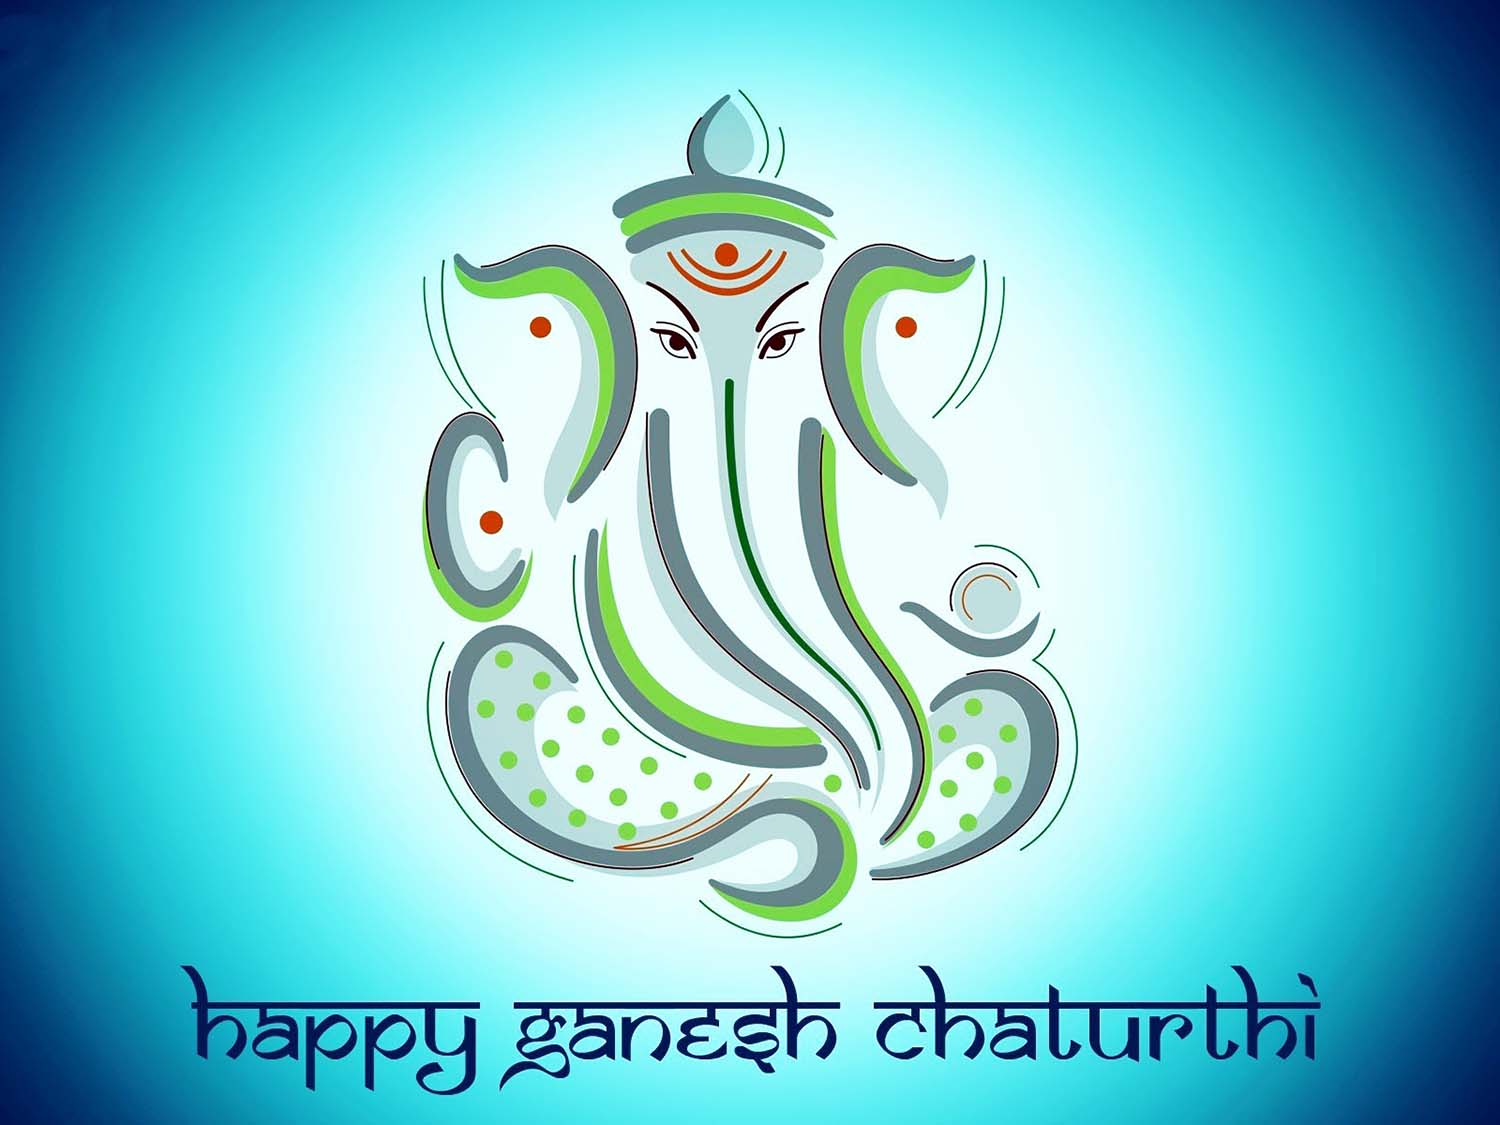 Lord Vinayak Image in glowing blue!